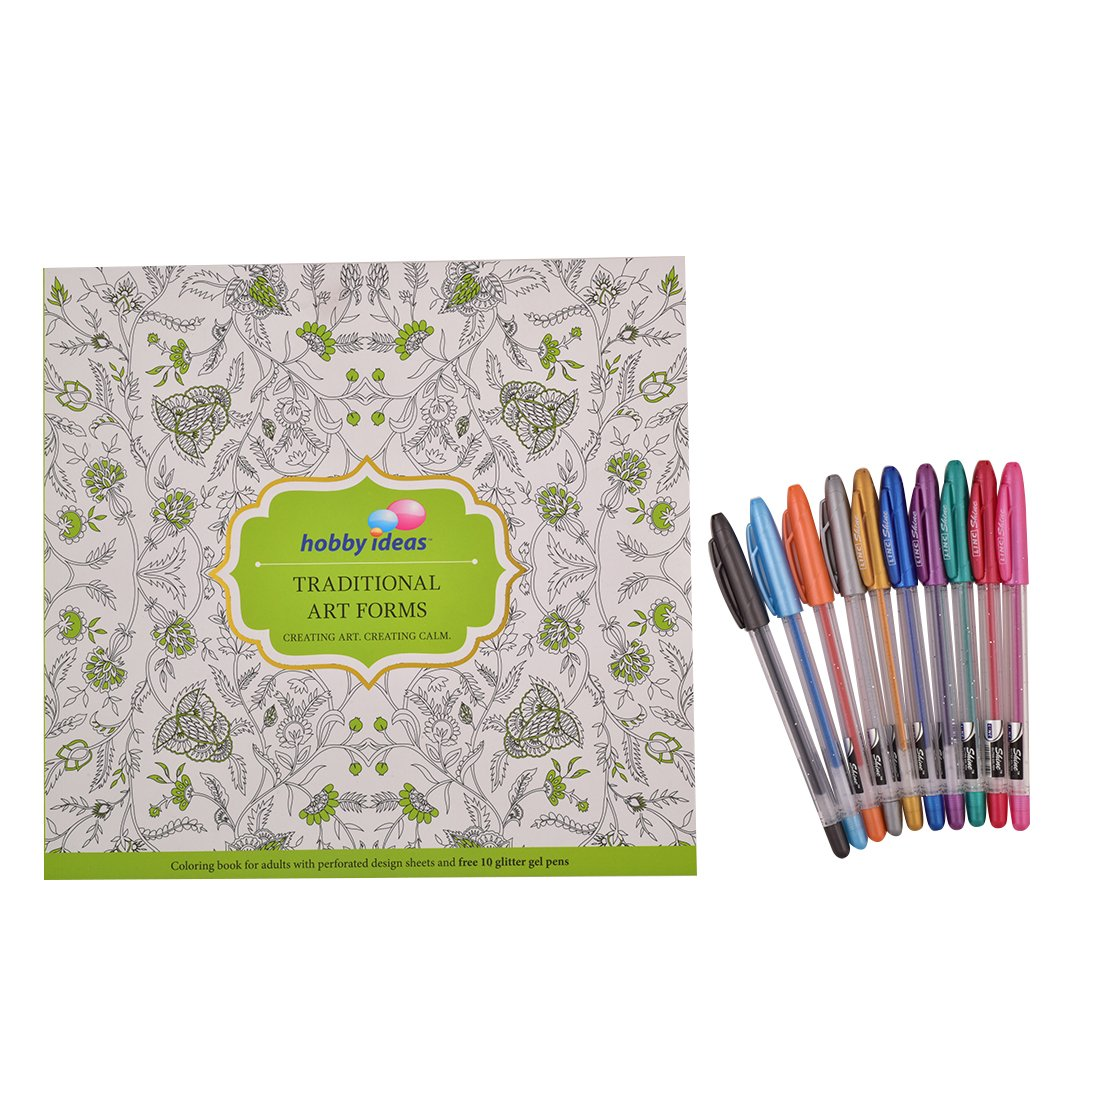 Buy Hobby Ideas Traditional Art Colouring Book For Adults With Set Of 10 Glitter Gel Pens Online At Low Prices In India